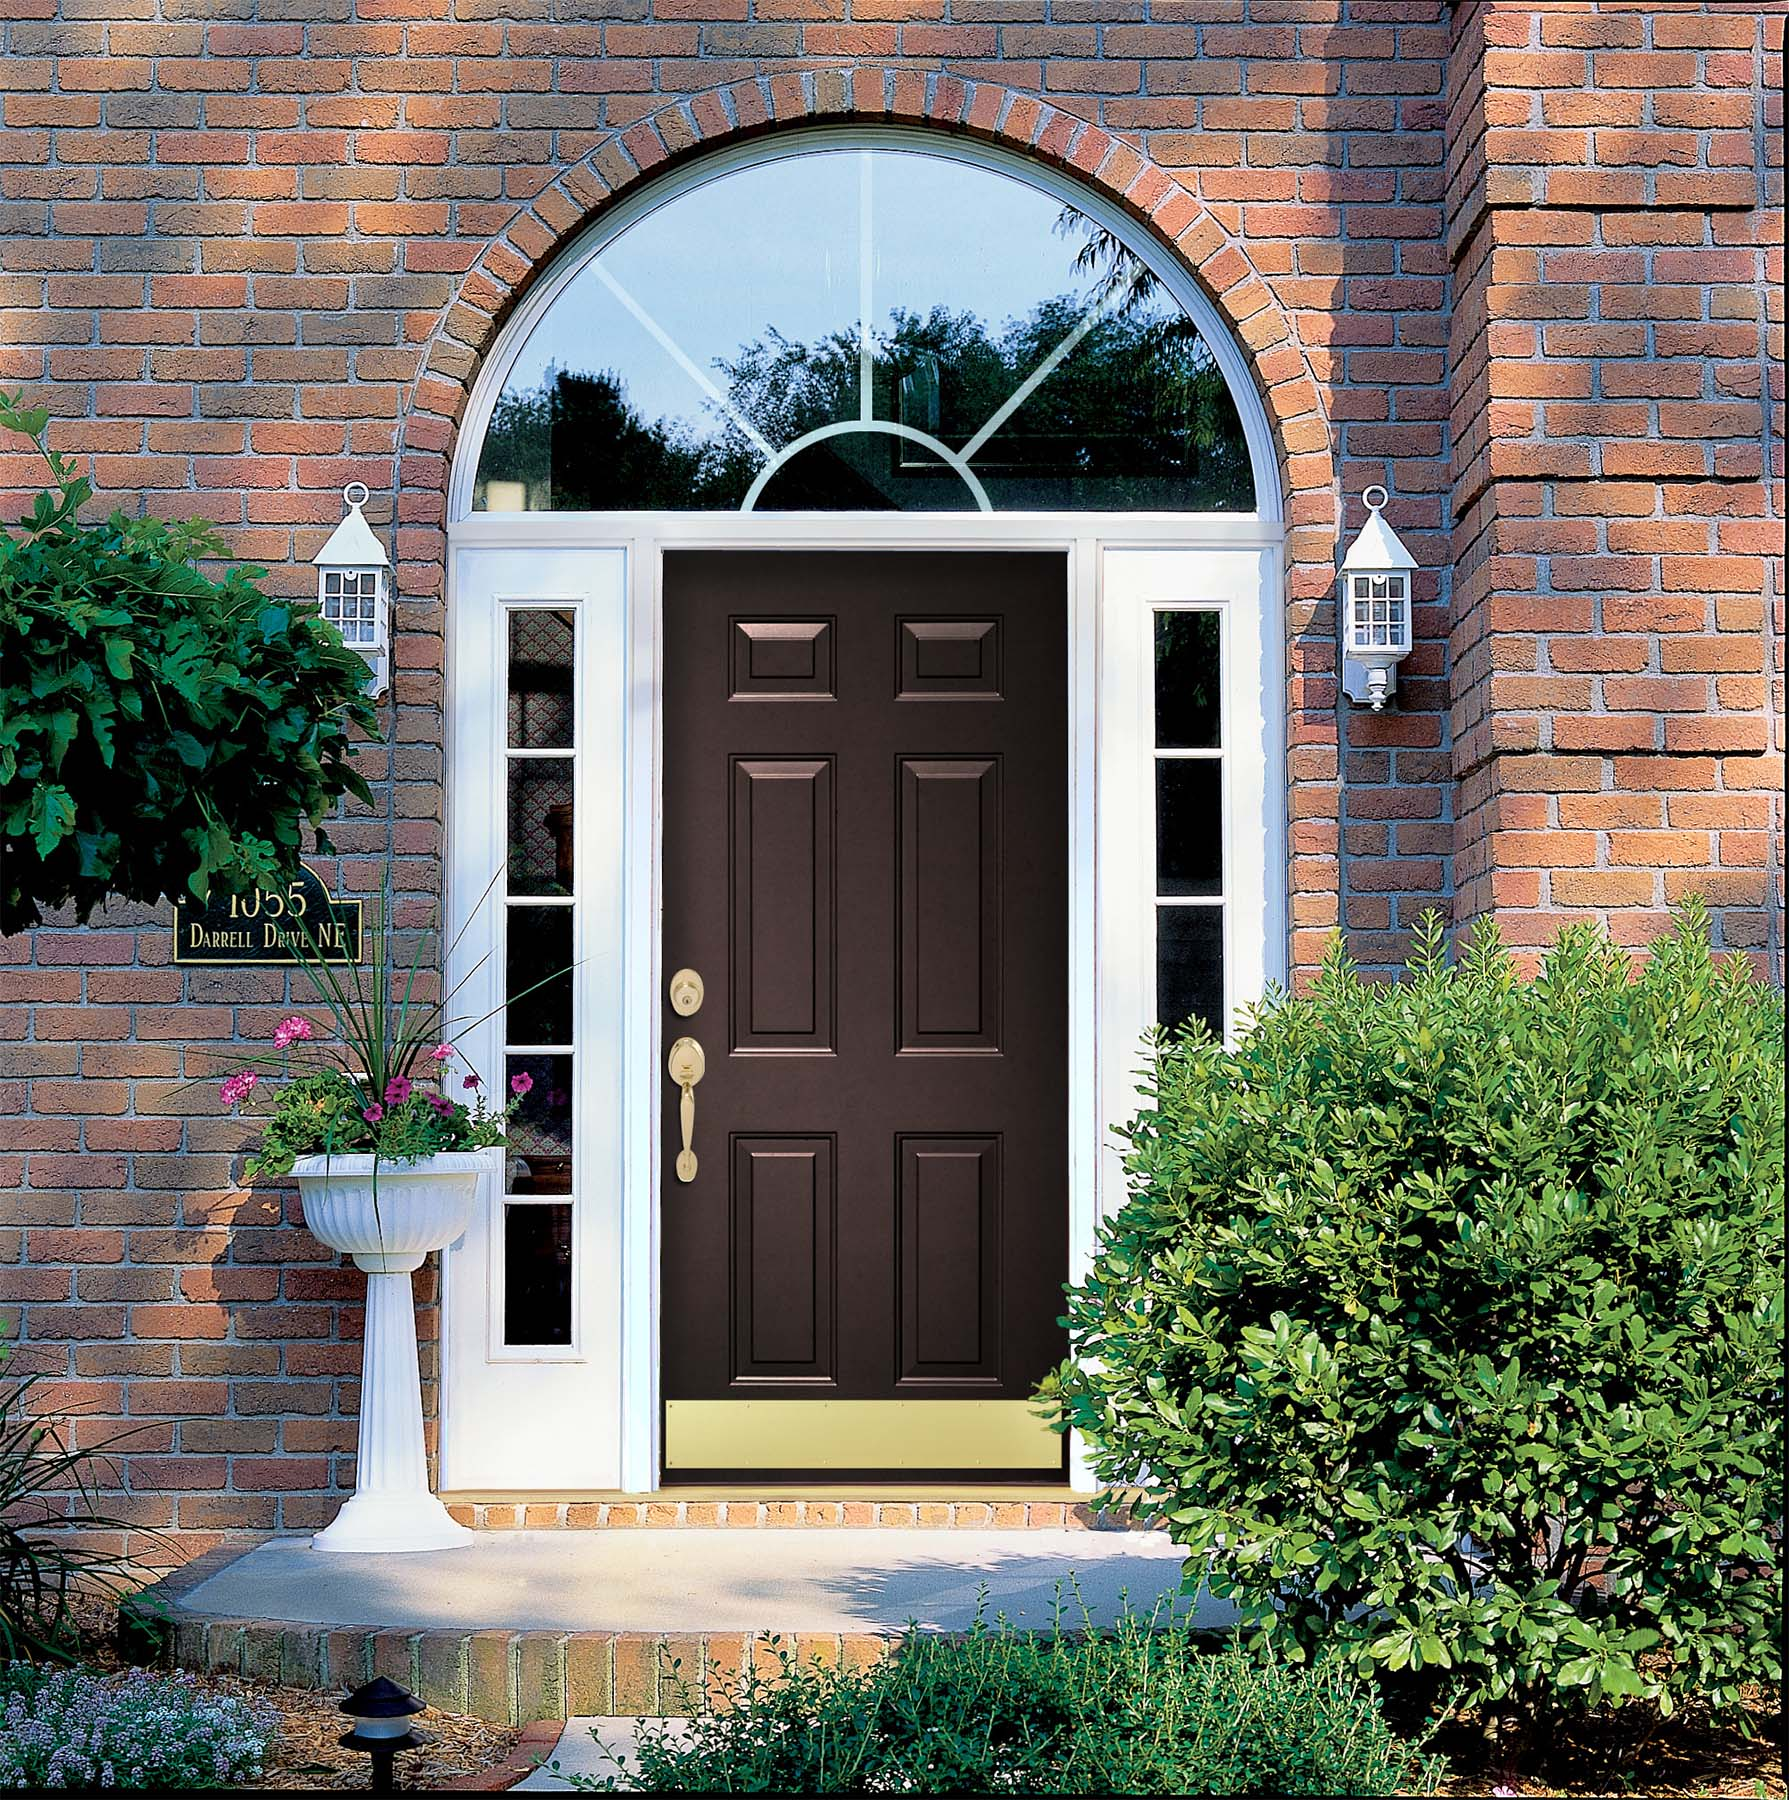 black front door with white trim glass transoms red brick house lots of plants white door lights